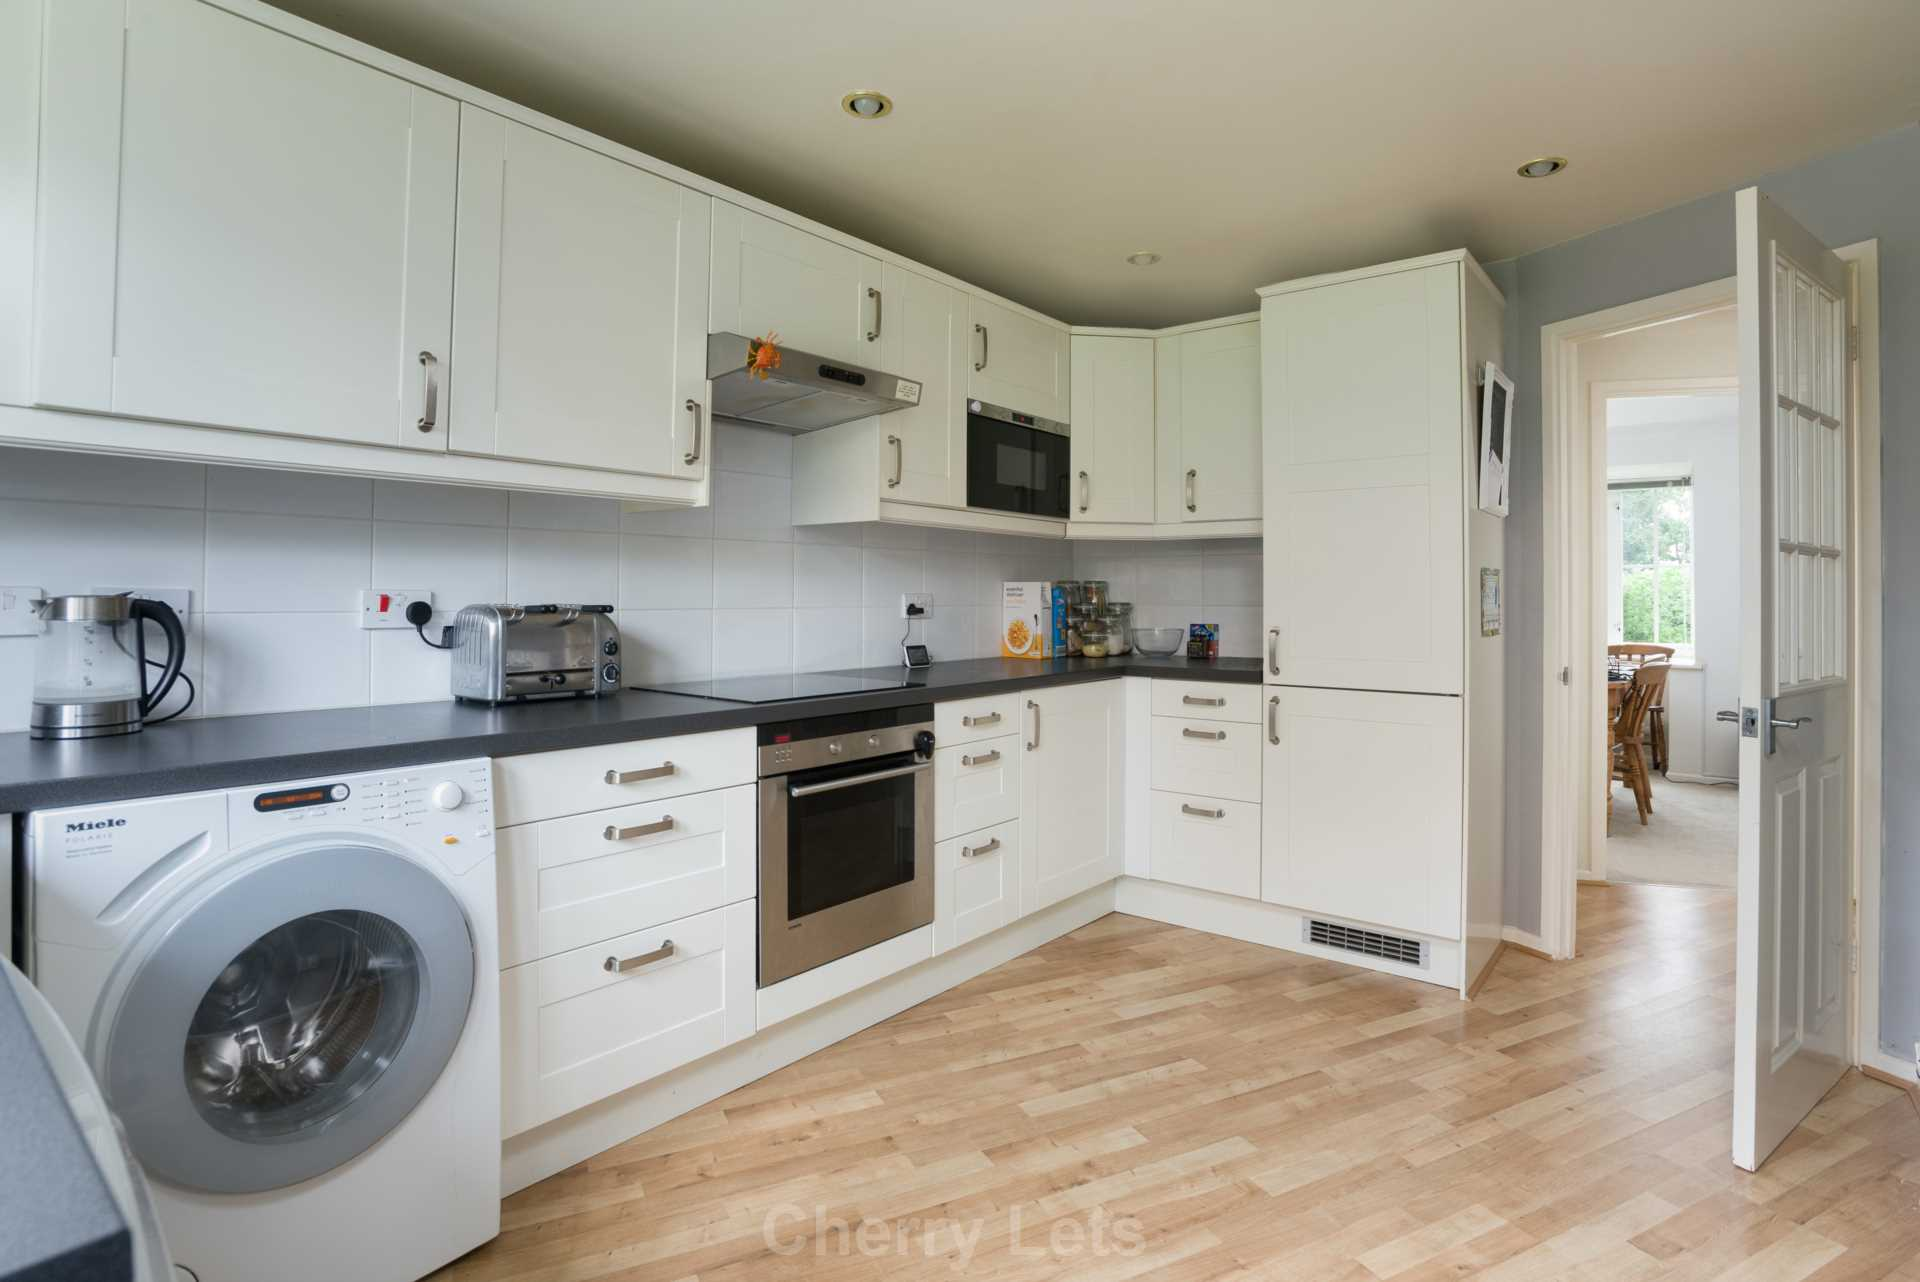 4 bed detached house to rent in Humphries Drive, Brackley, NN13  - Property Image 4